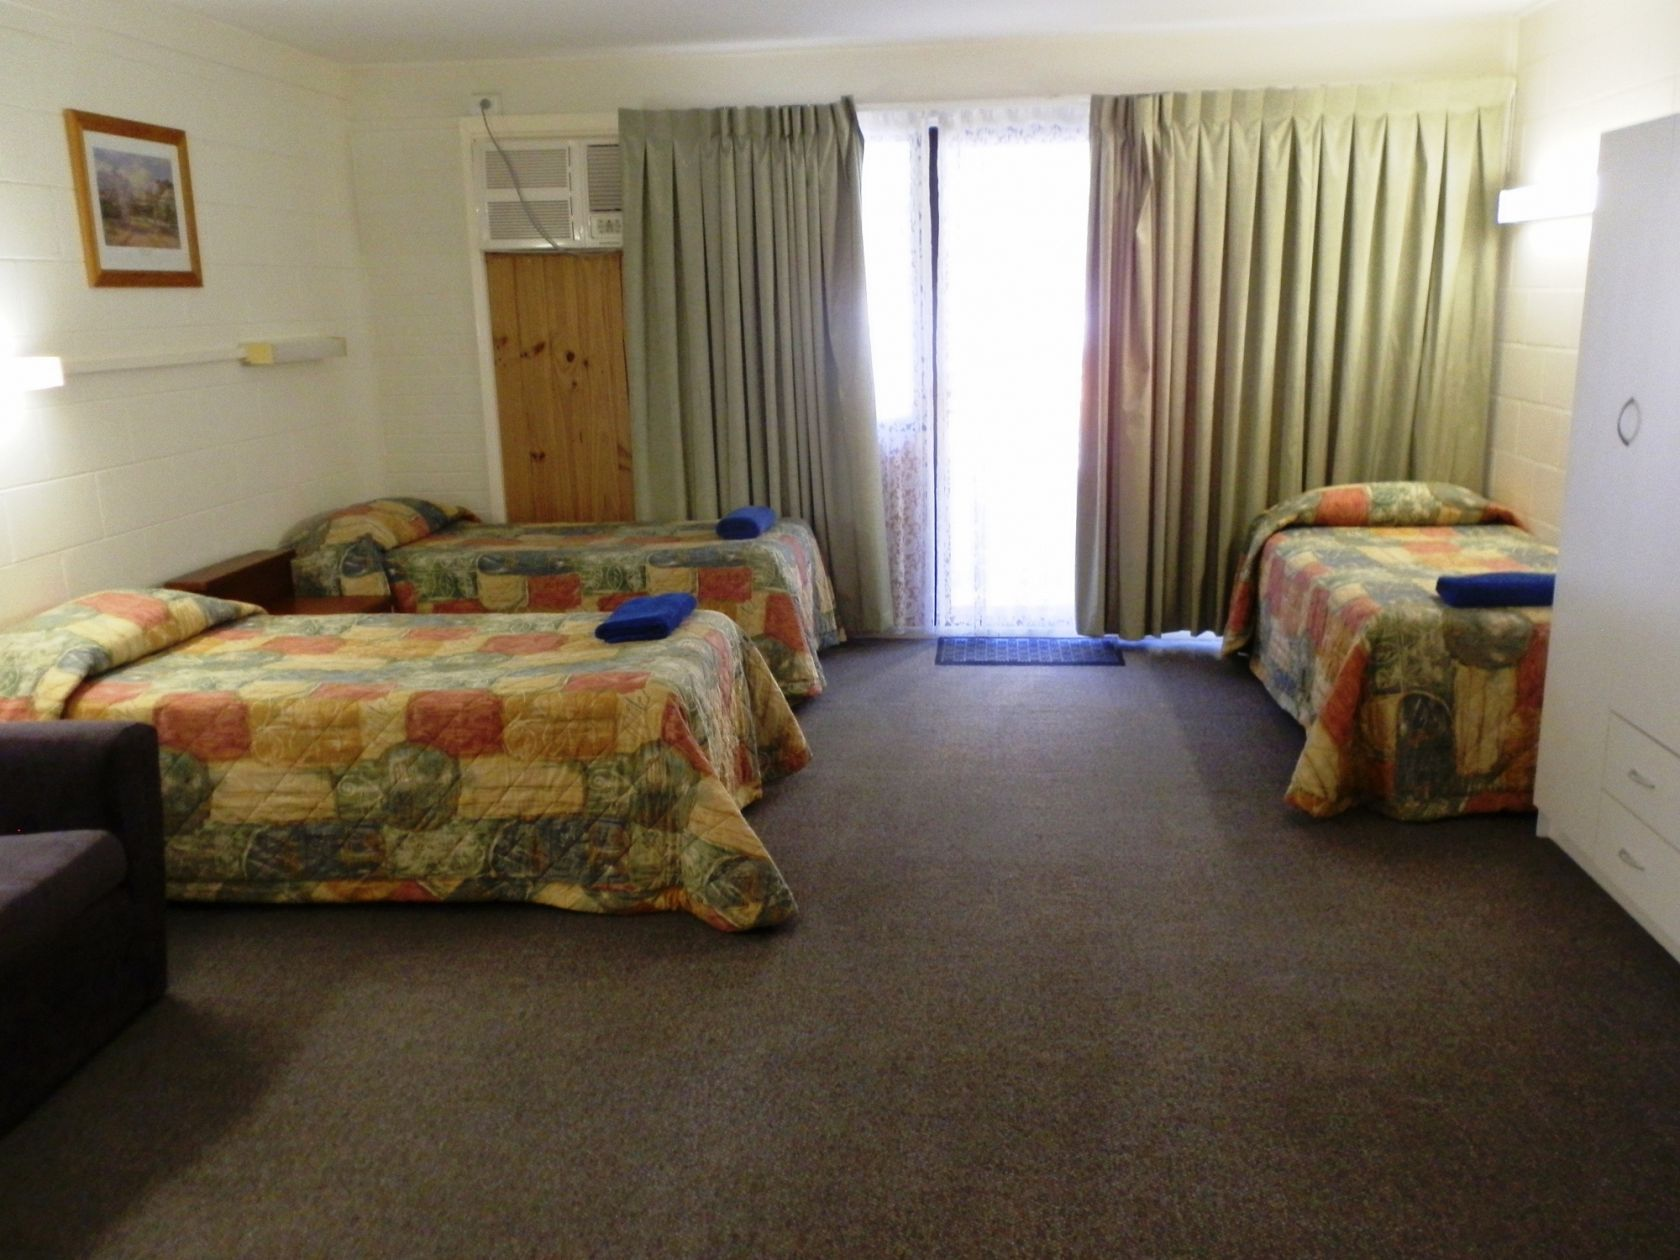 Only Freehold Motel at This Price Point in City